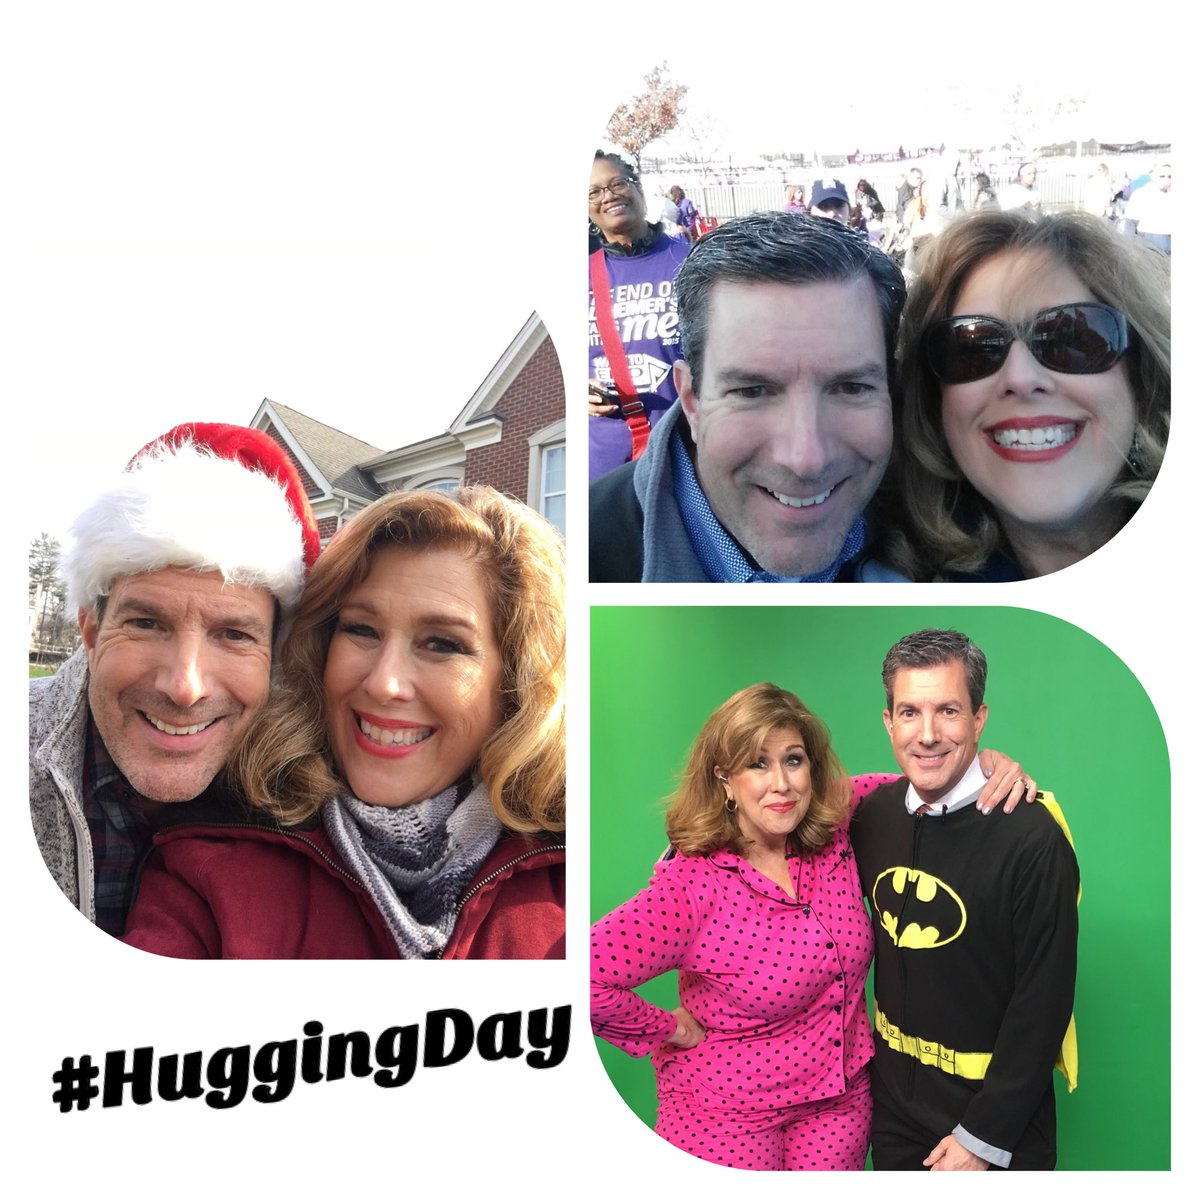 Documenting my Days. For number one hundred eighty-four, a #TBT in honor of #NationalHuggingDay.  I sure miss hugs, don't you? @bobkellyfox29 @fox29philly